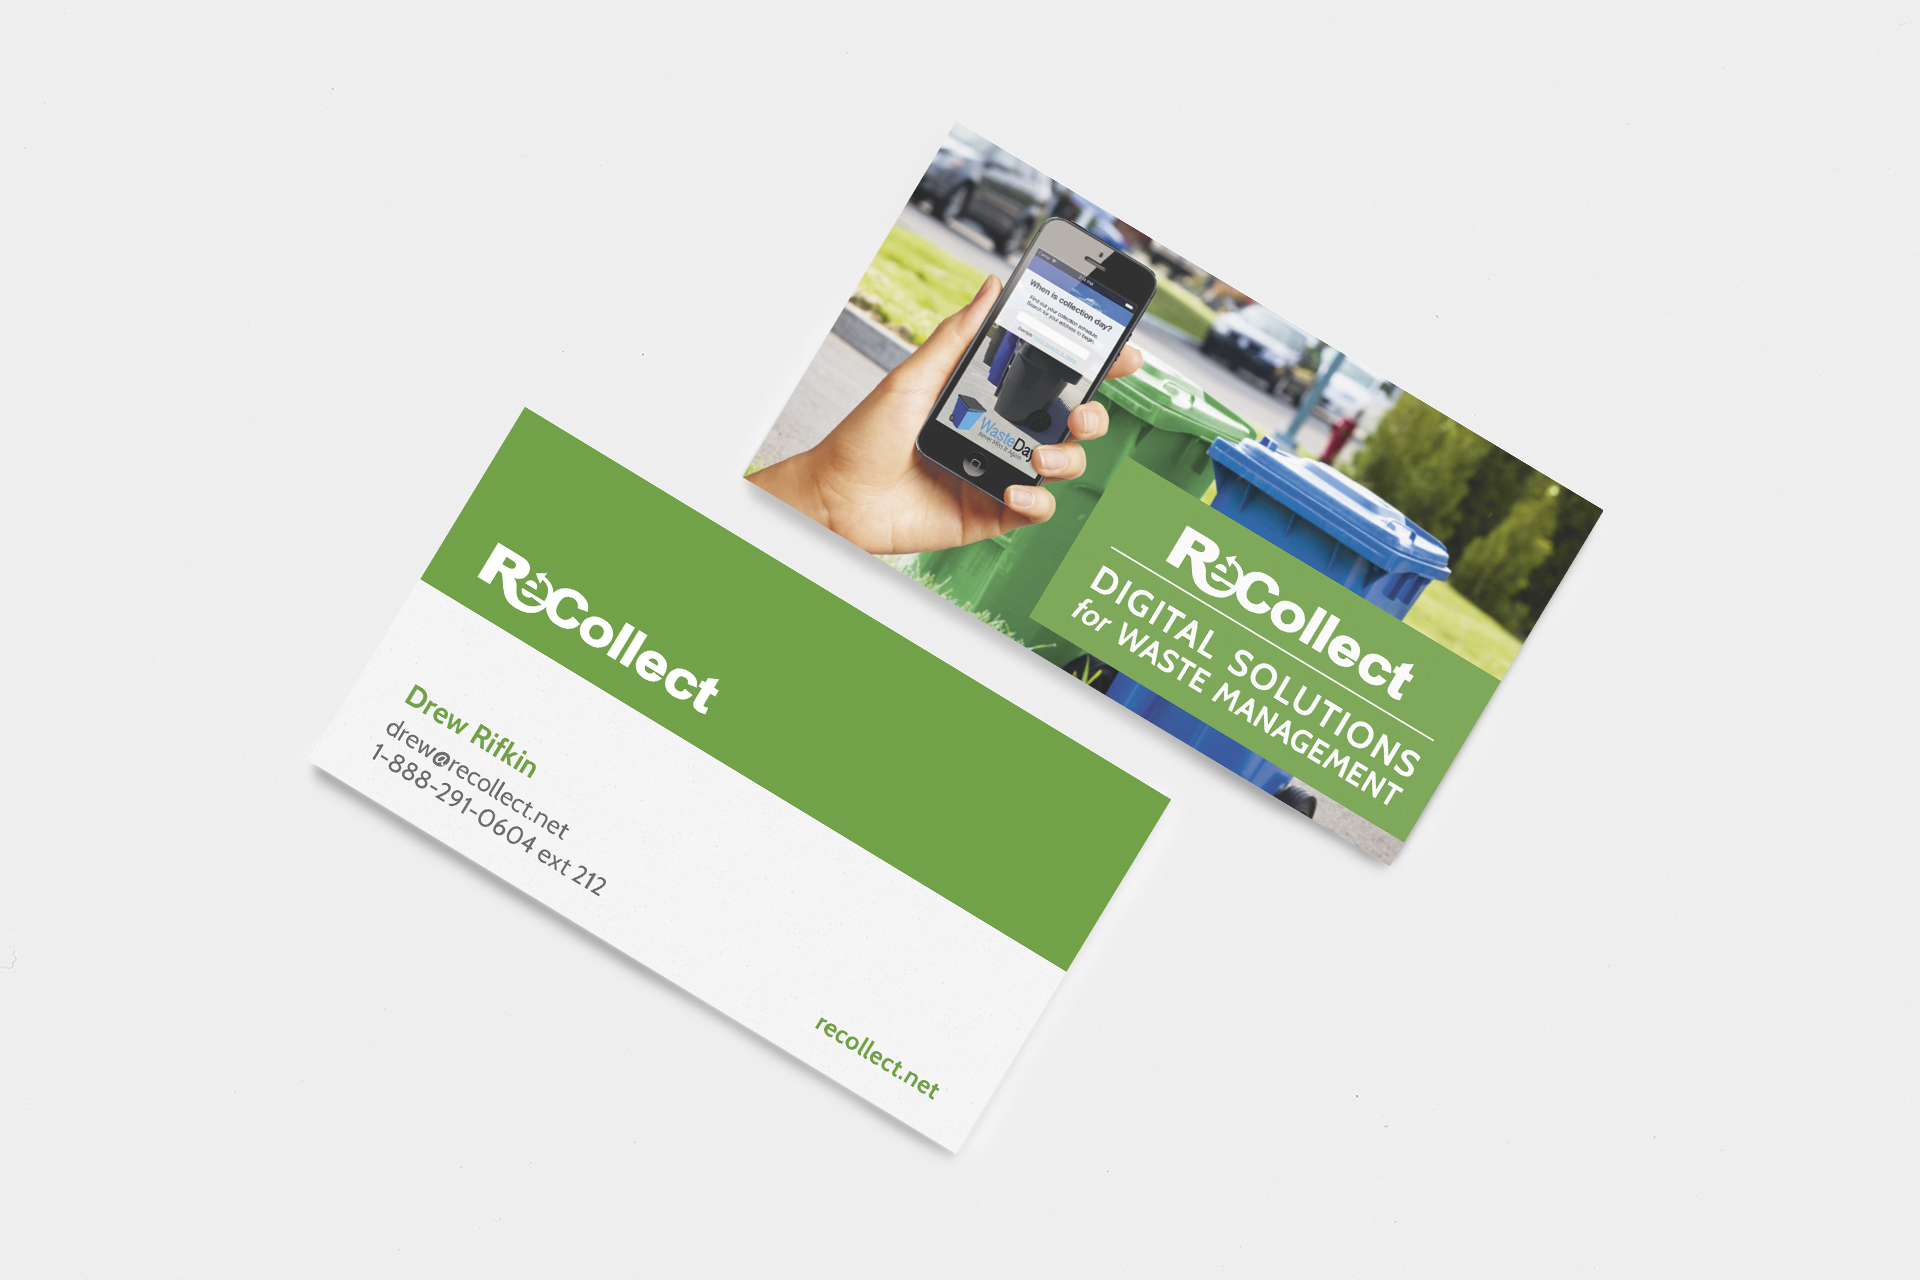 ReCollect business card design